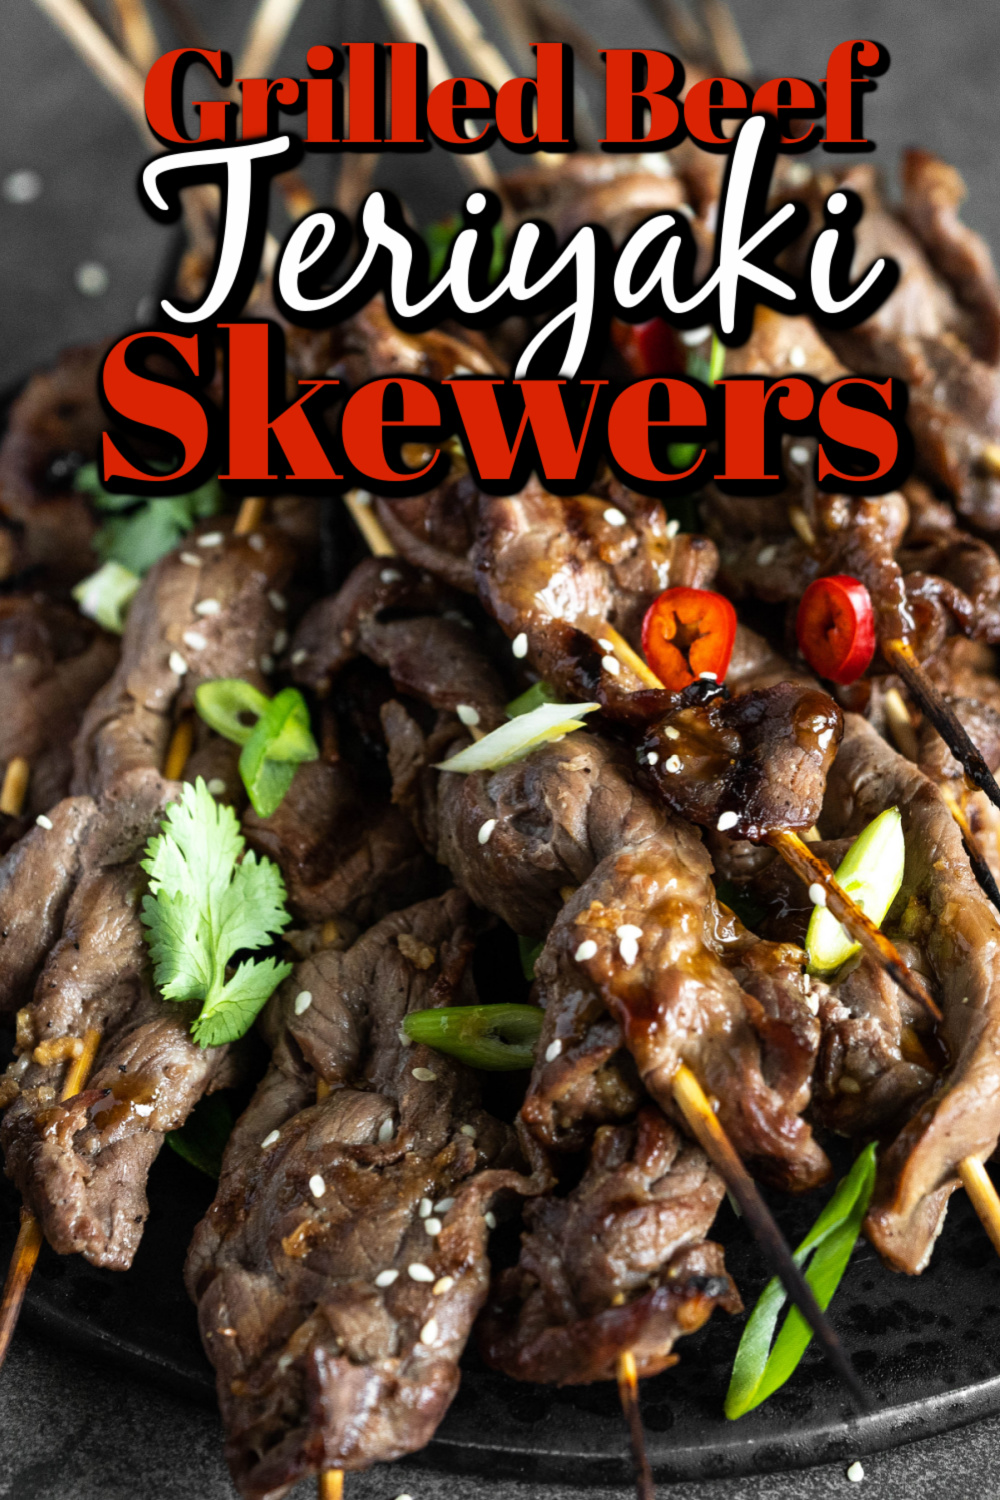 These Grilled Beef Teriyaki Skewers are full of Asian-inspired flavors that you are going to love. Did I mention they are easy to prepare!